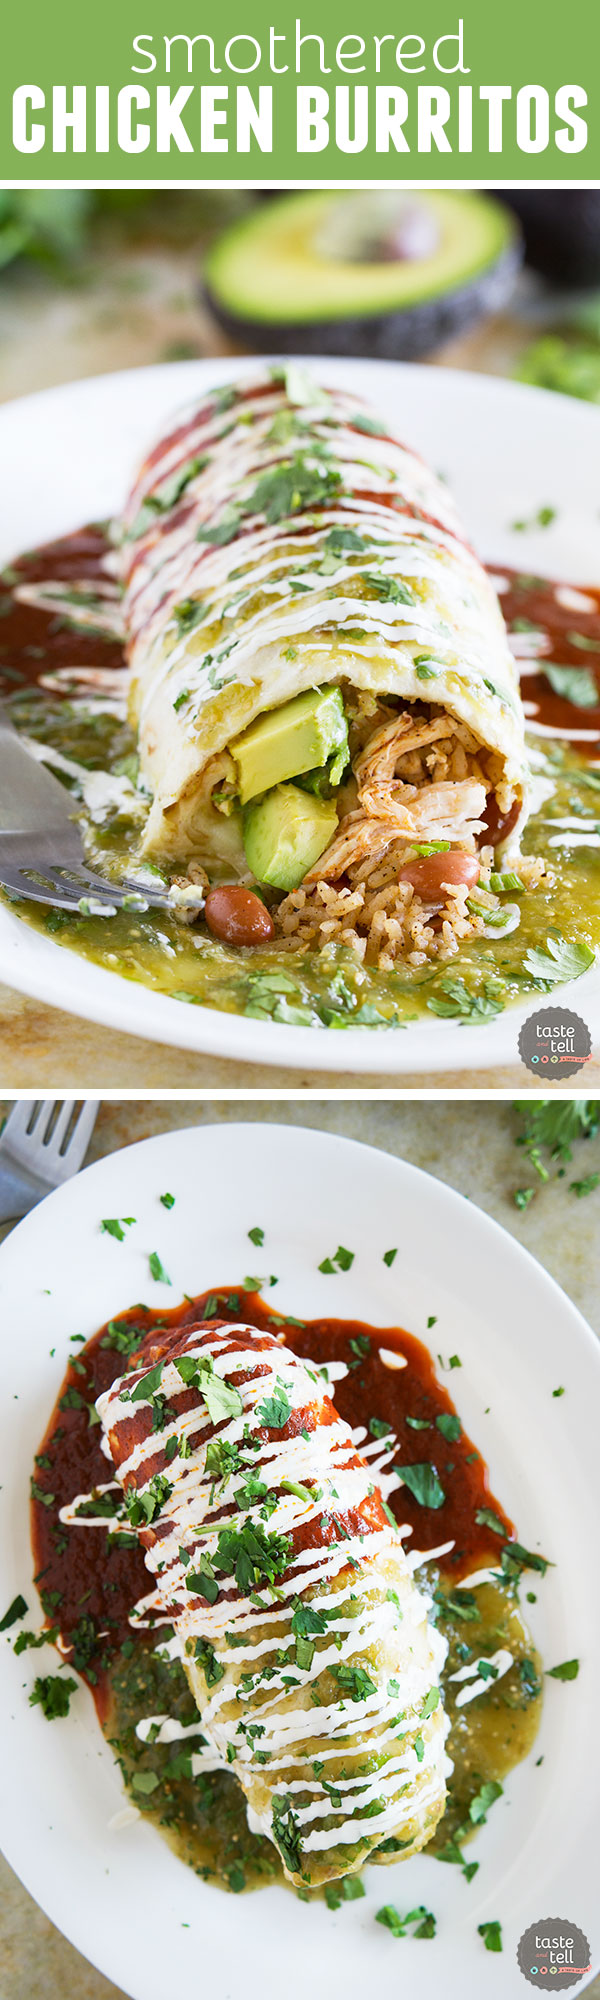 Covered in red, green and white (the Mexican flag colors), these Smothered Chicken Burritos bring the flavors of Mexico to your dining room table.